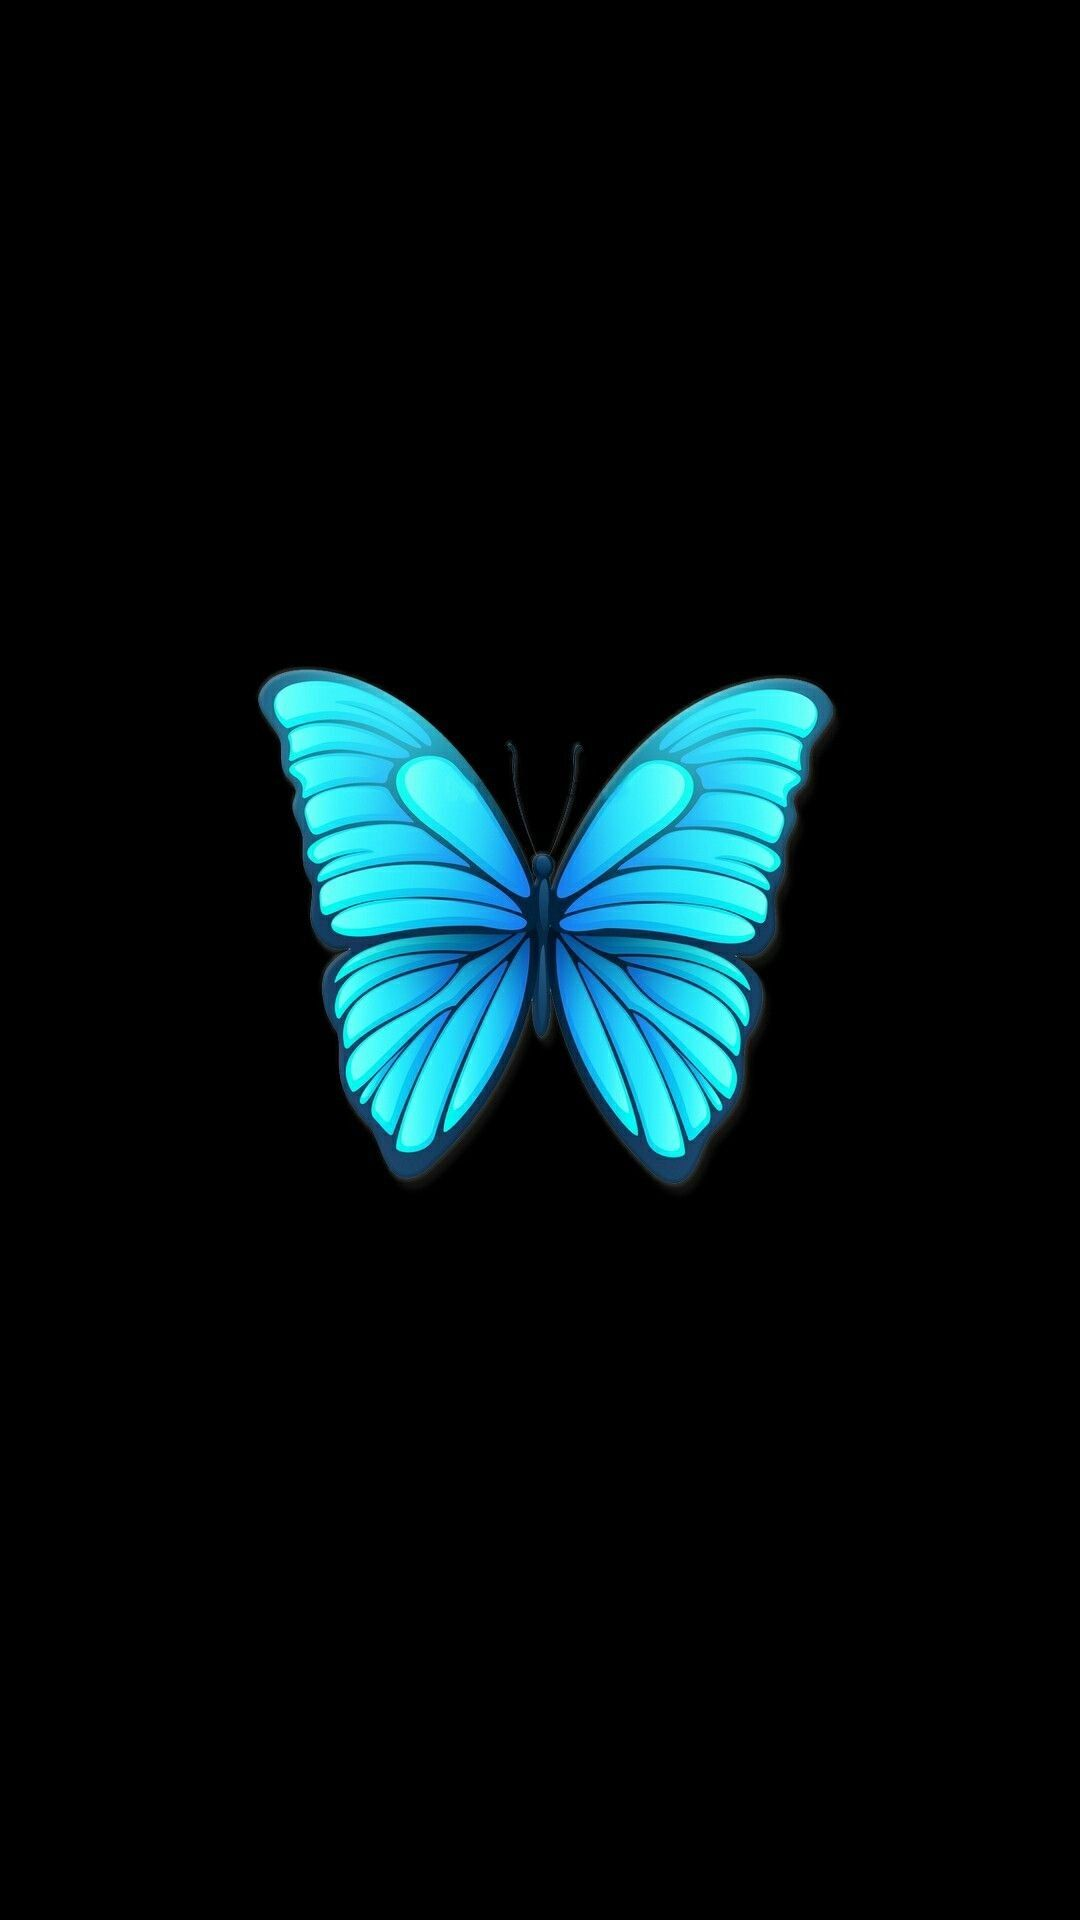 Beautiful Butterfly Wallpaper Black In 2020 With Images